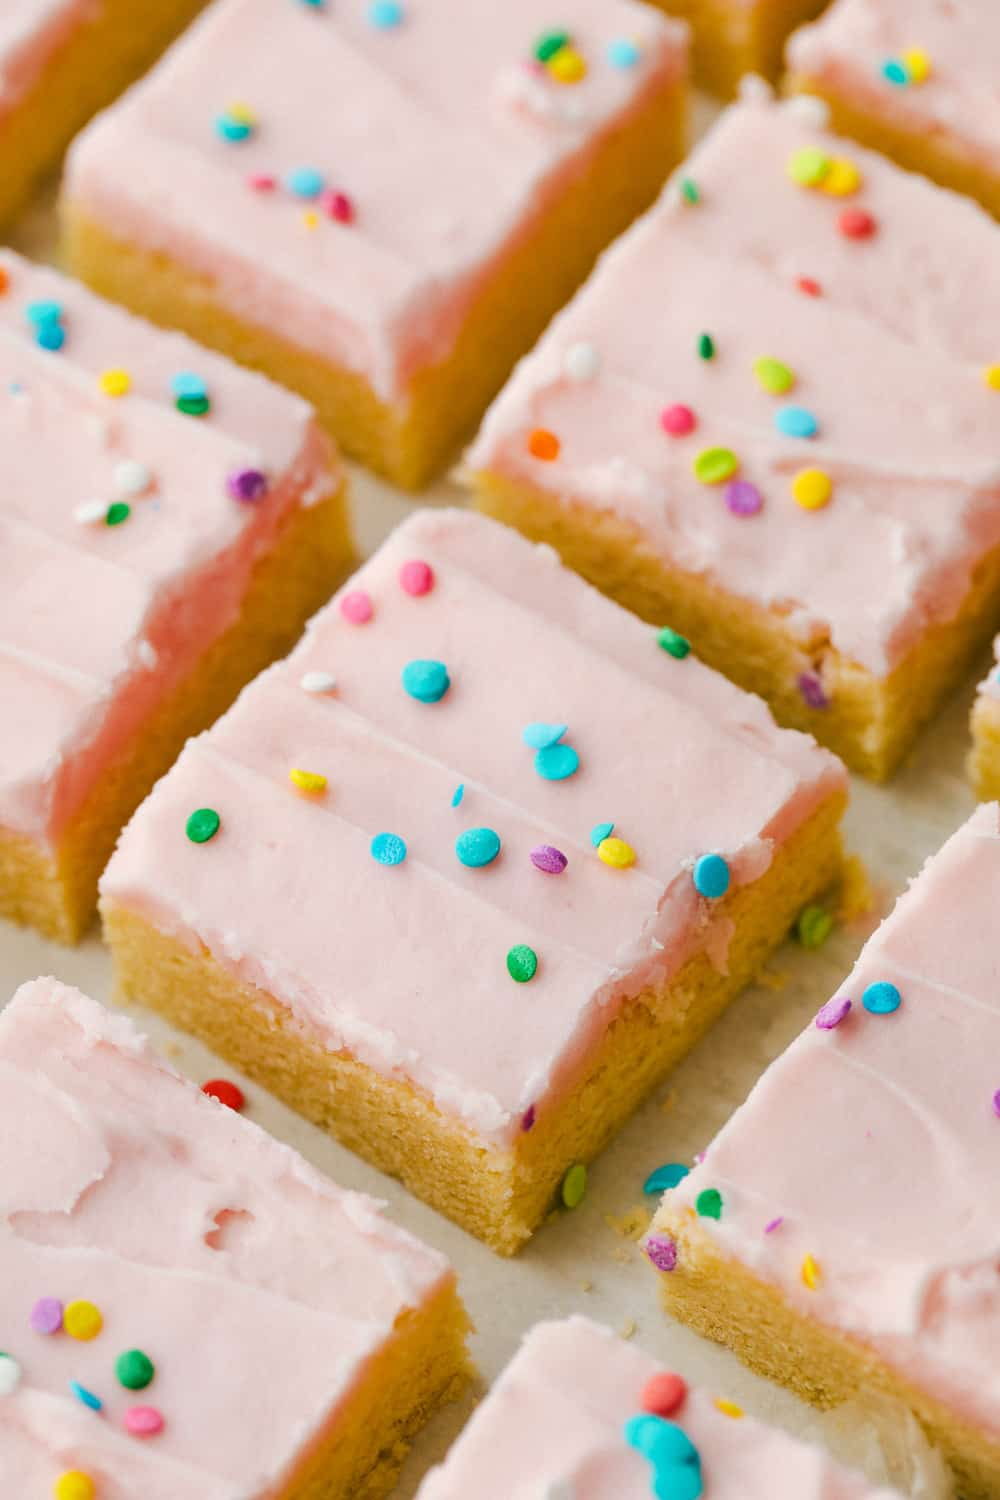 Sugar cookie bars cut into squares with sprinkles on top.